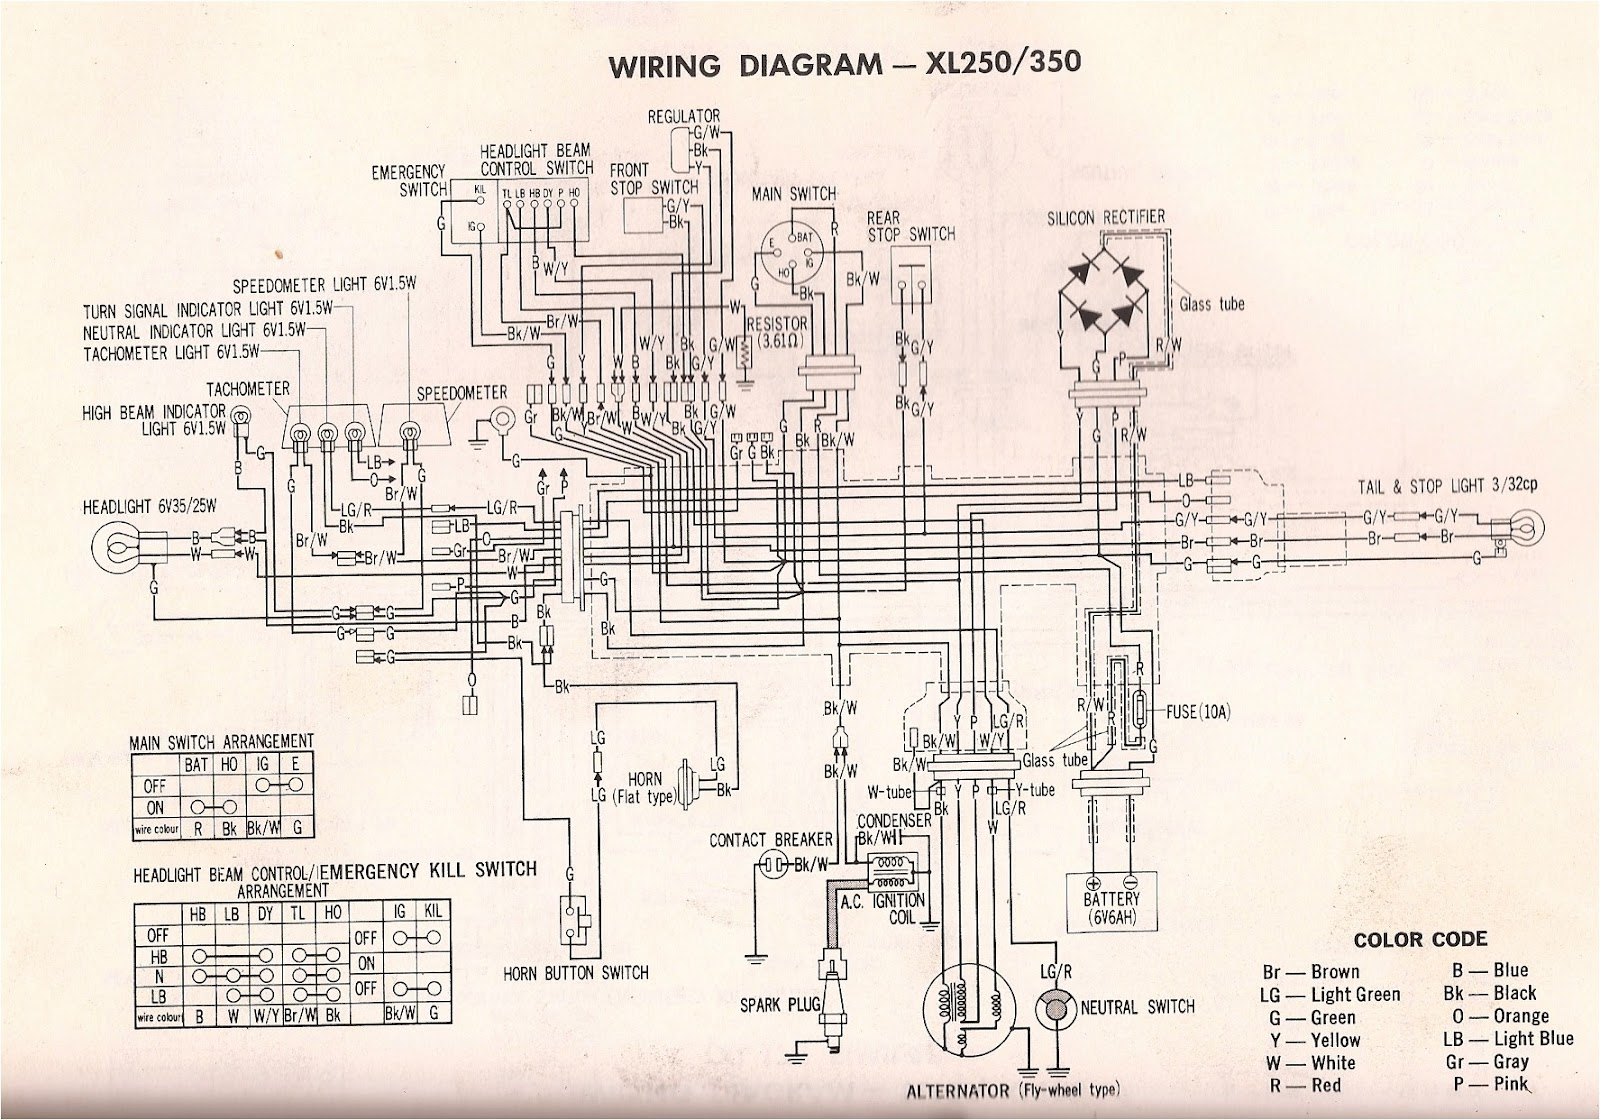 XL350+Wiring+diagram+S r4l xl350 wiring diagram (and xl250) honda c70 wiring diagram at gsmx.co